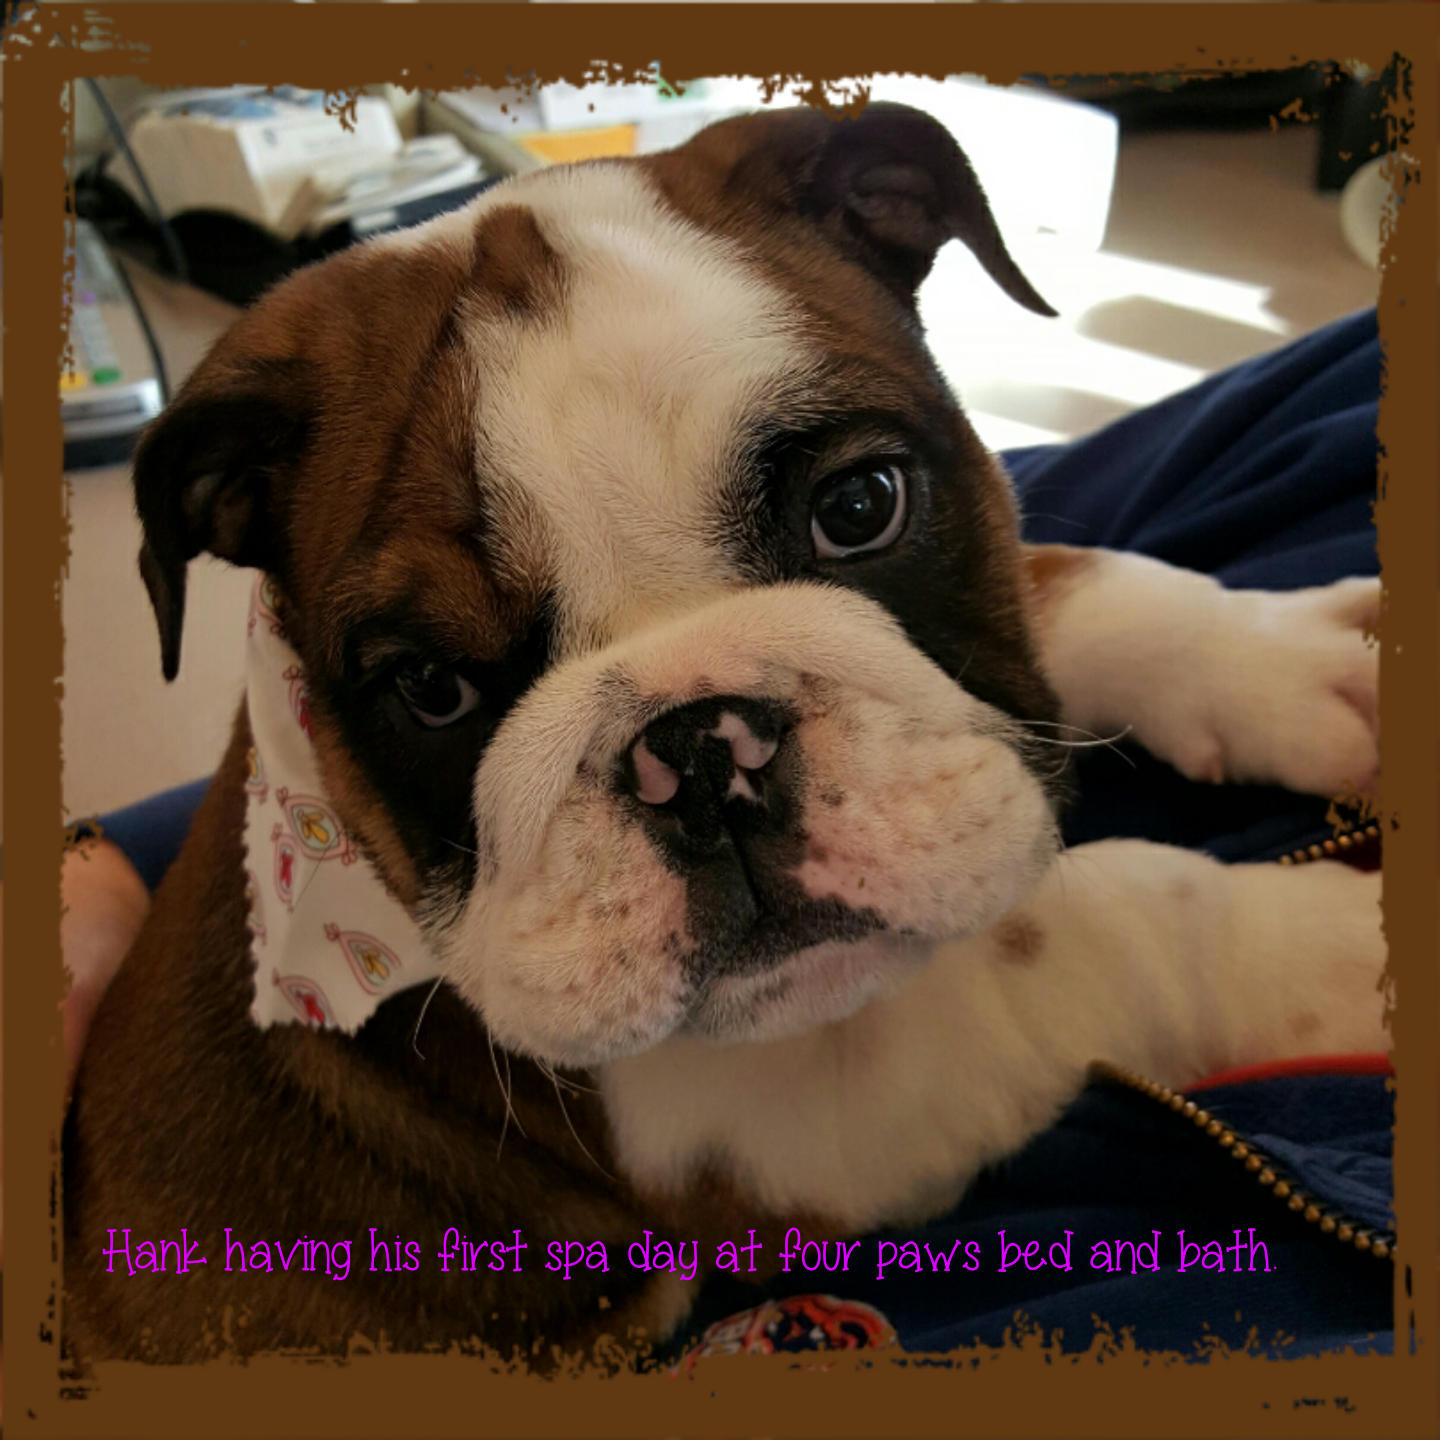 HANK TWISS, 10 WKS